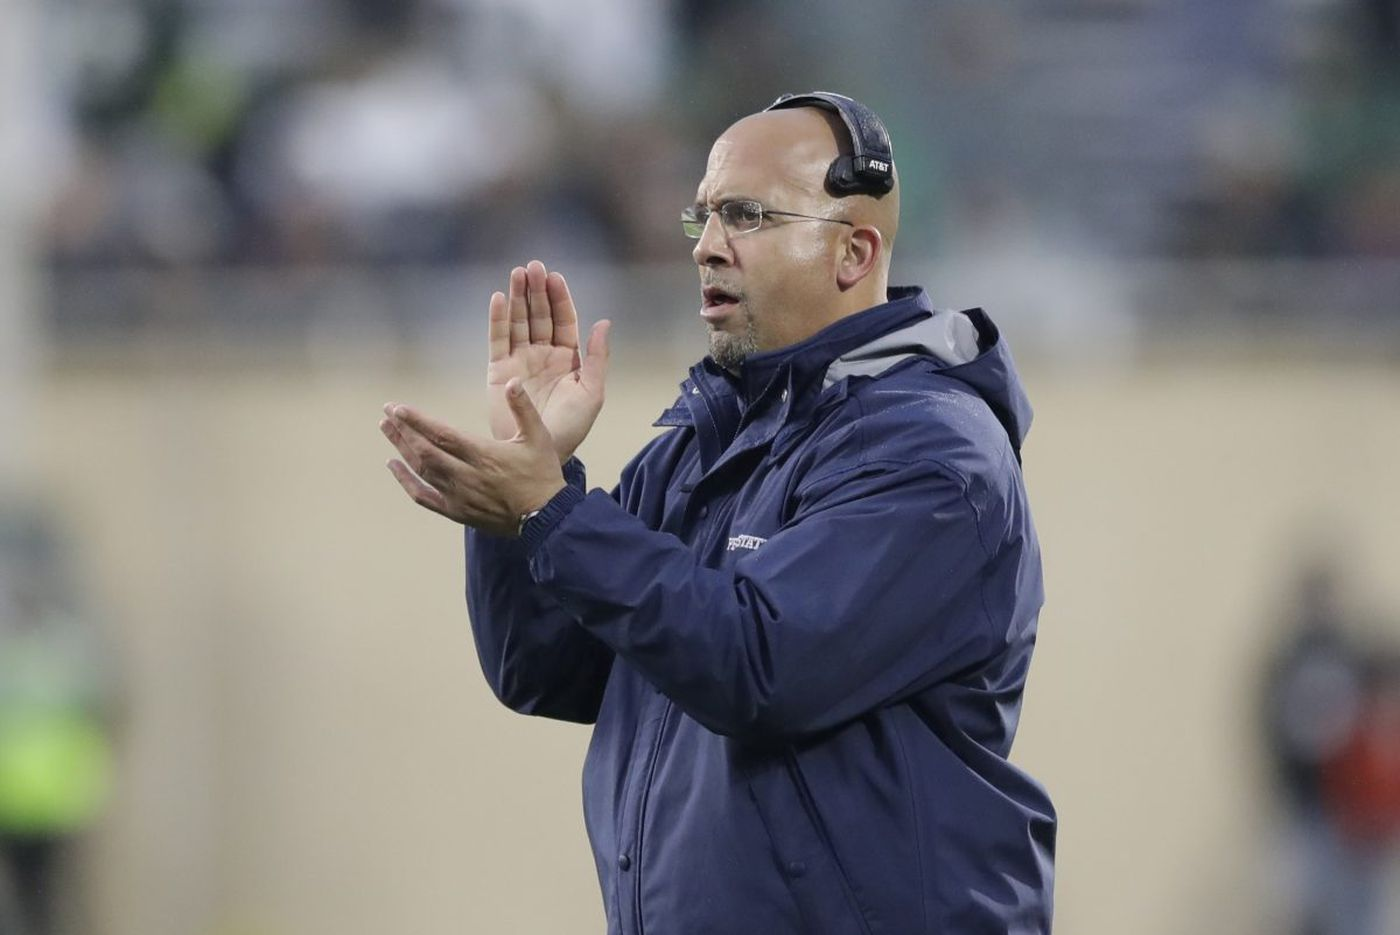 Franklin won't set long-range goals, wants players to focus each day